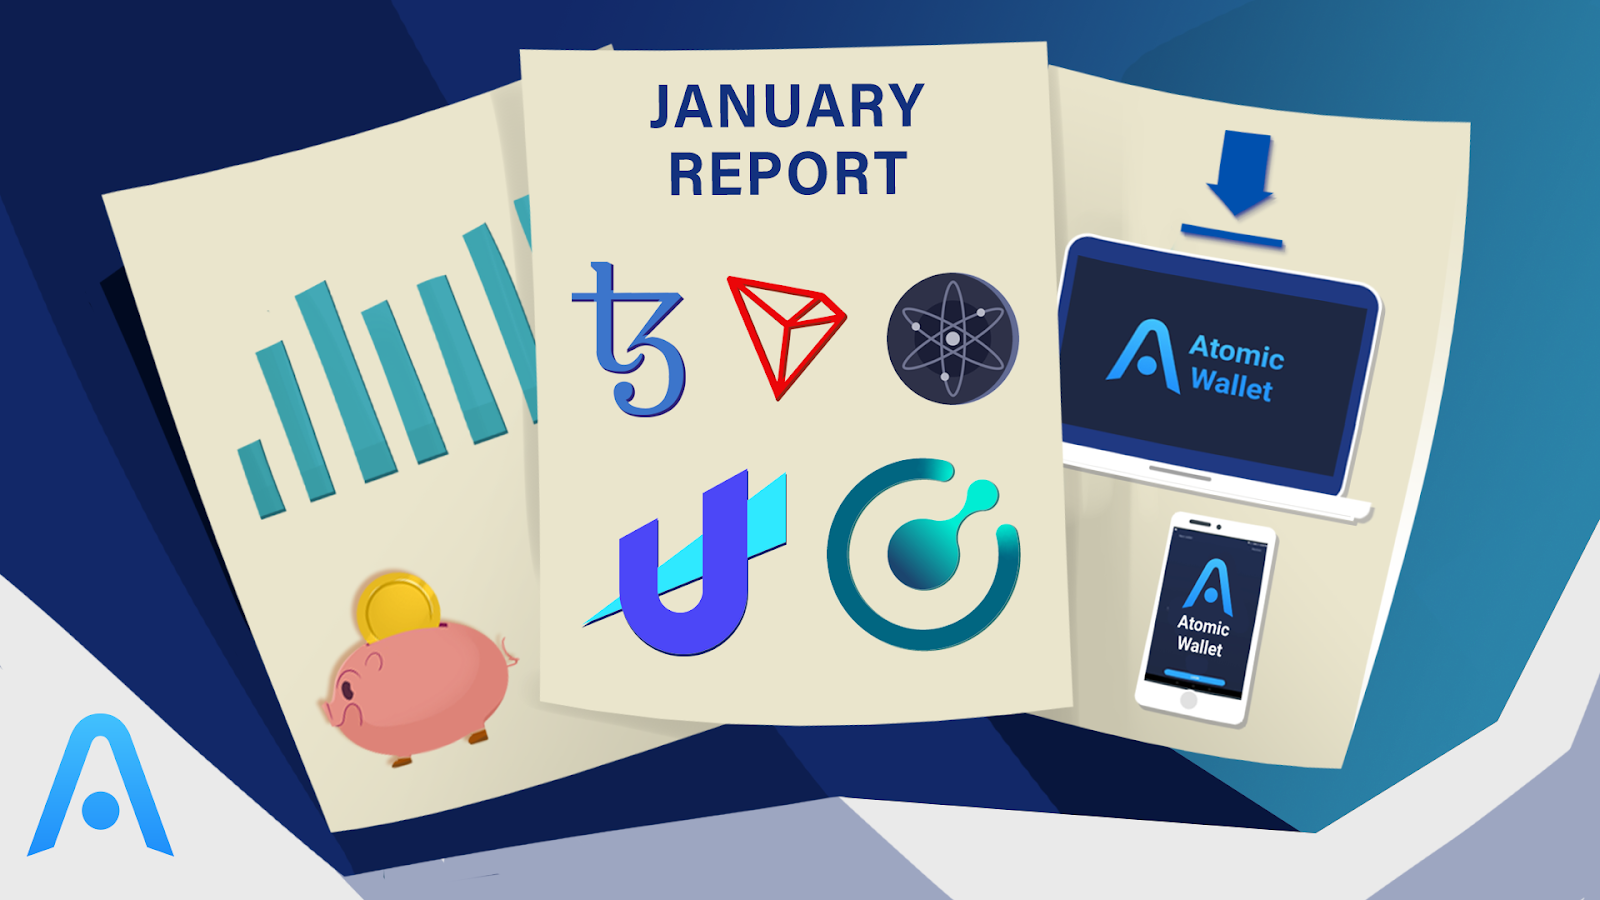 January report